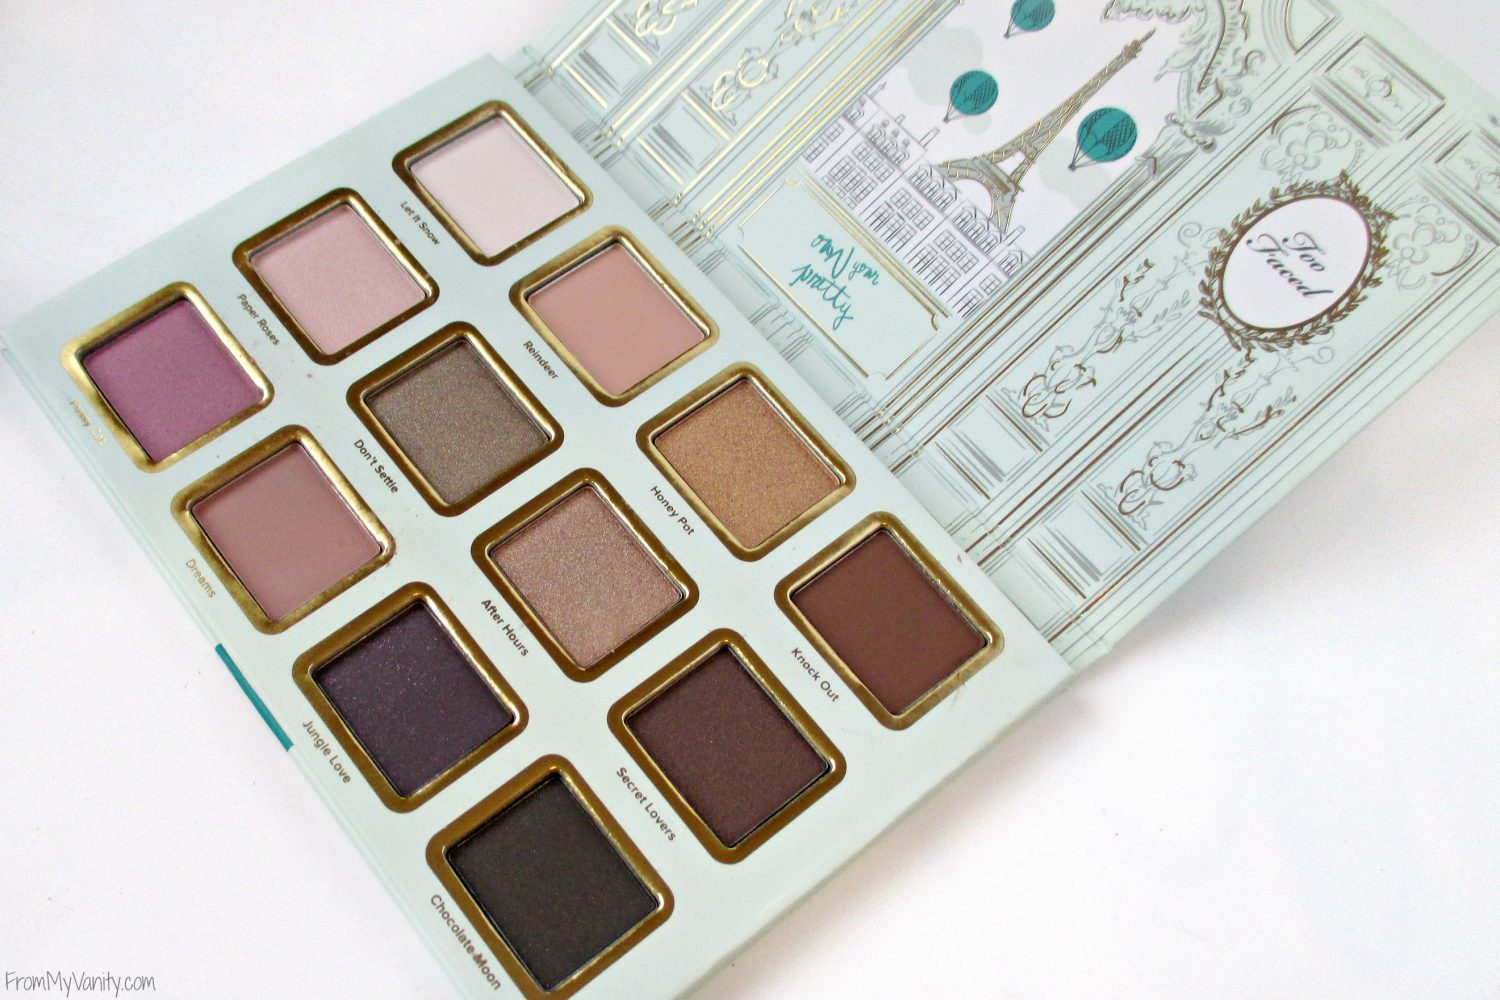 Too Faced La Petite Maison // Holiday Set // Review & Swatches // Eyeshadow Palette // #UltaBeauty #TooFaced FromMyVanity.com